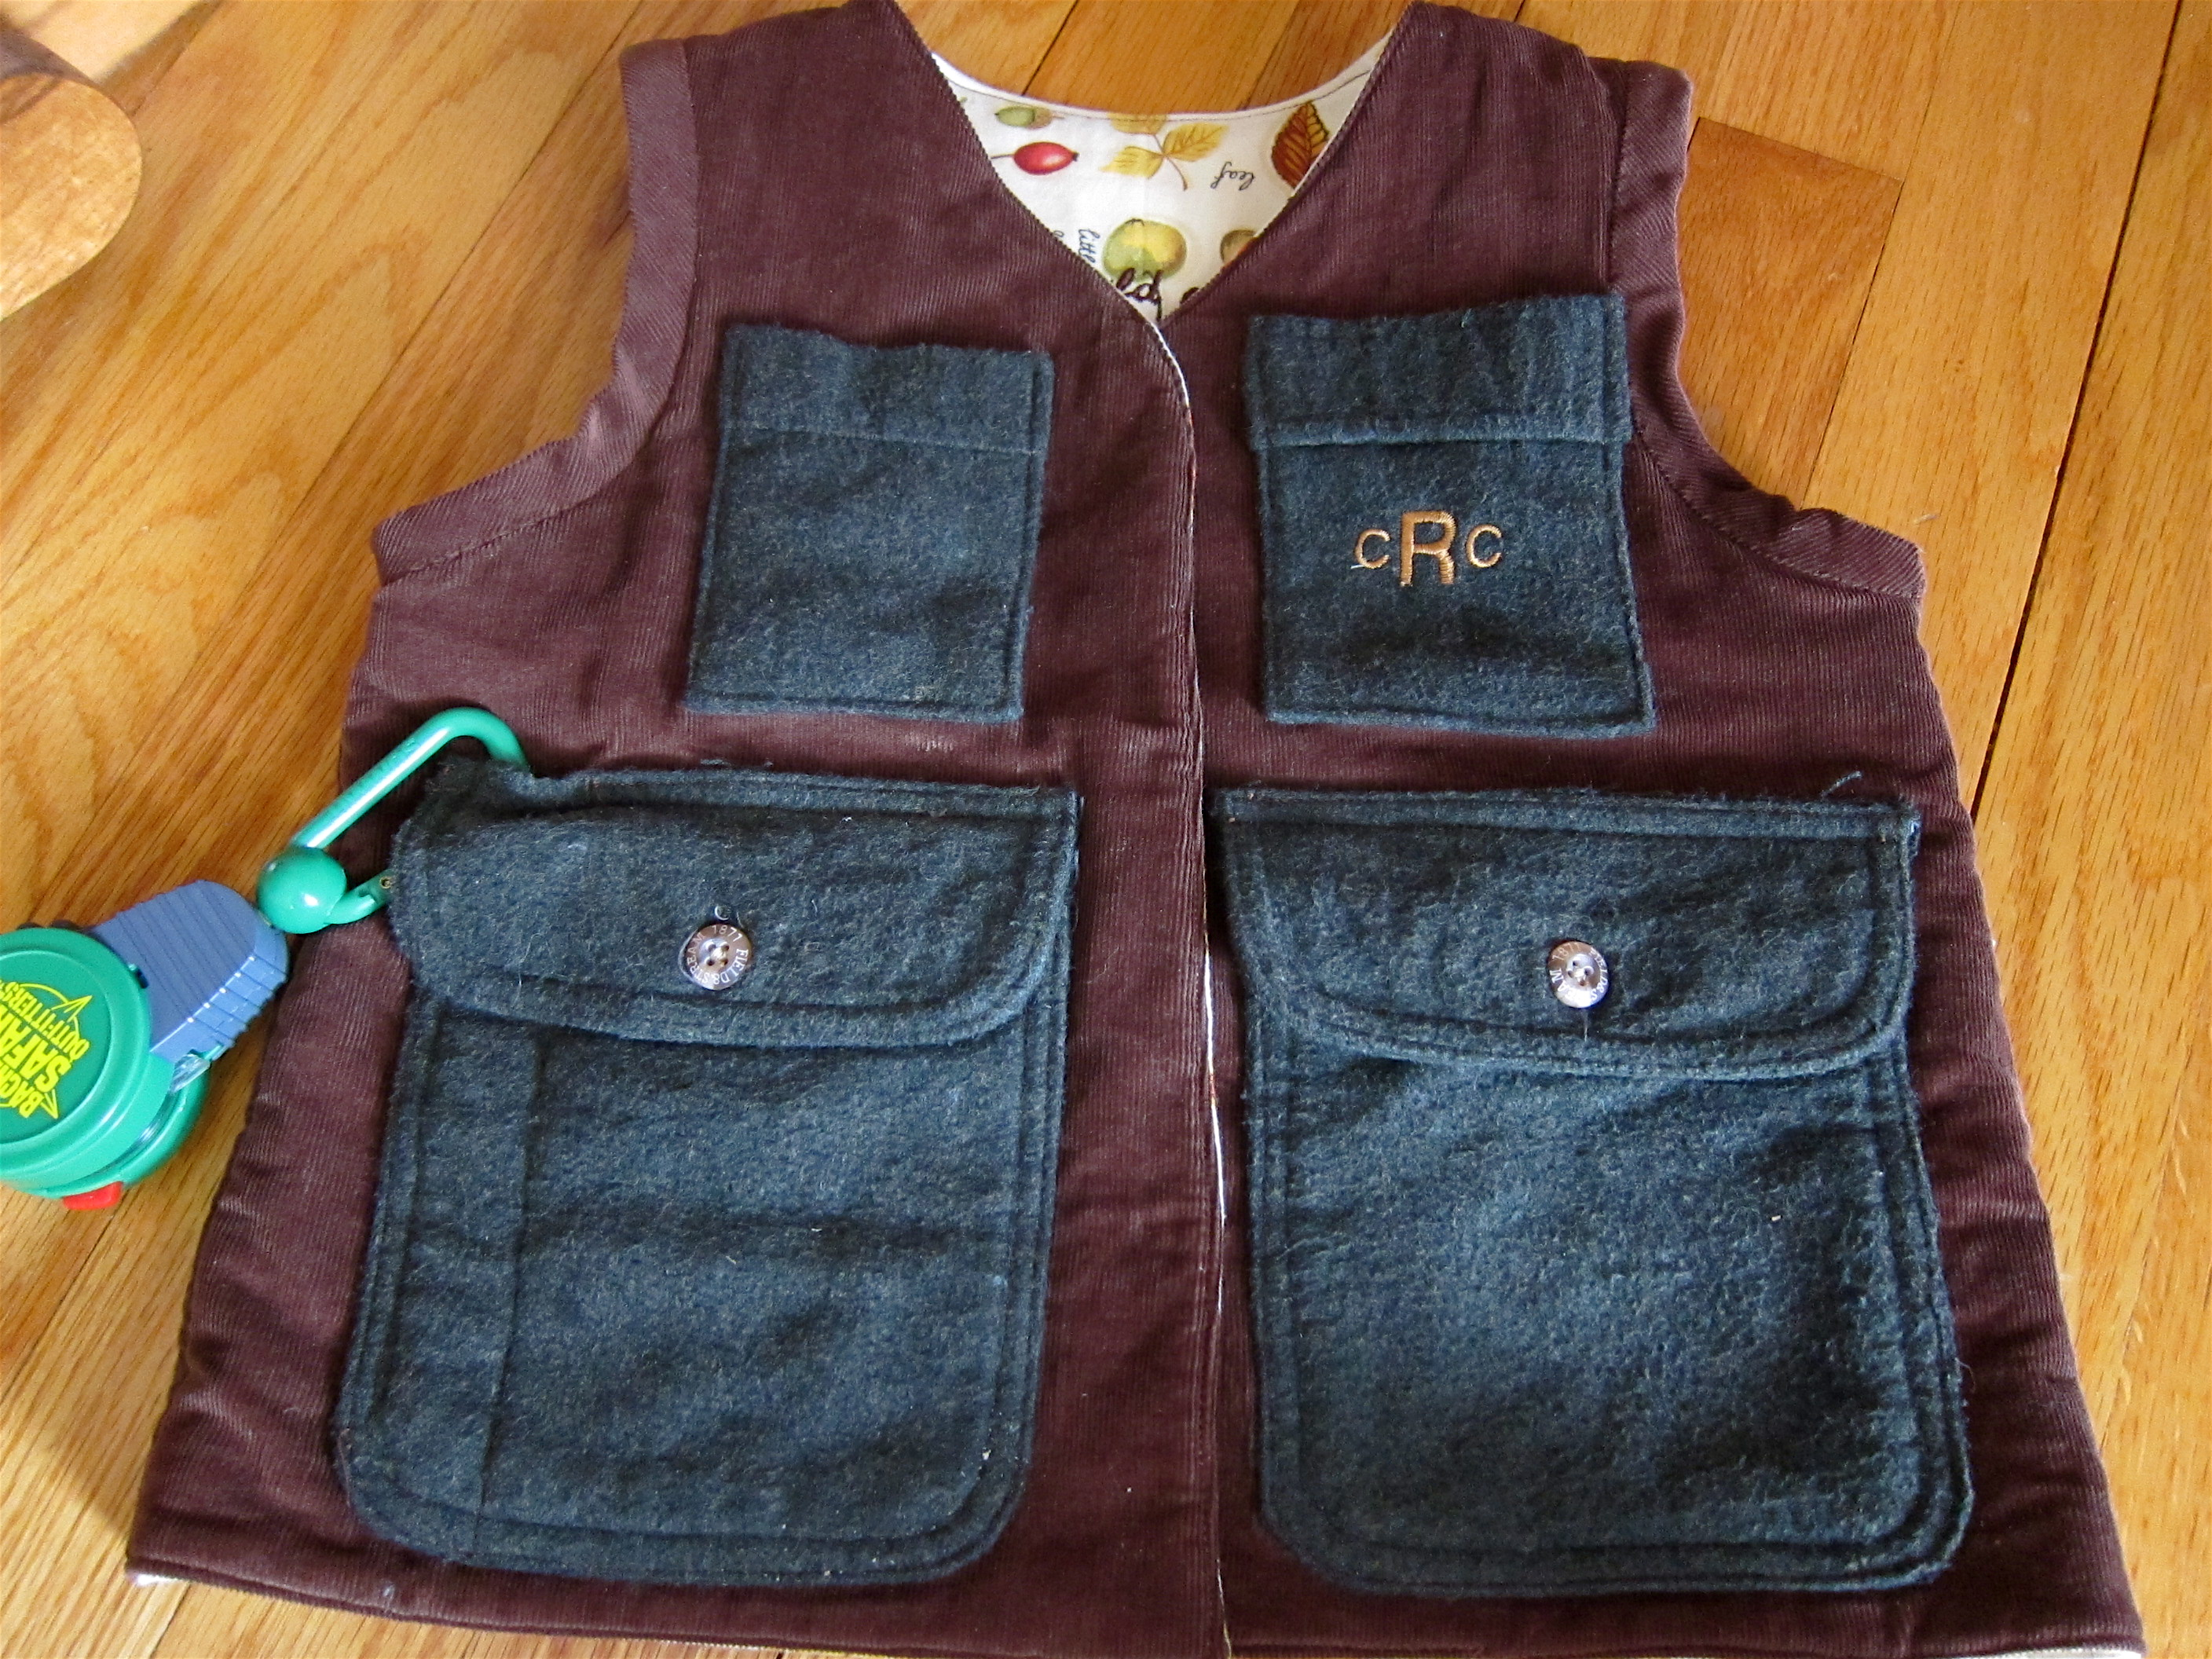 Explorer Vest in all its glory!